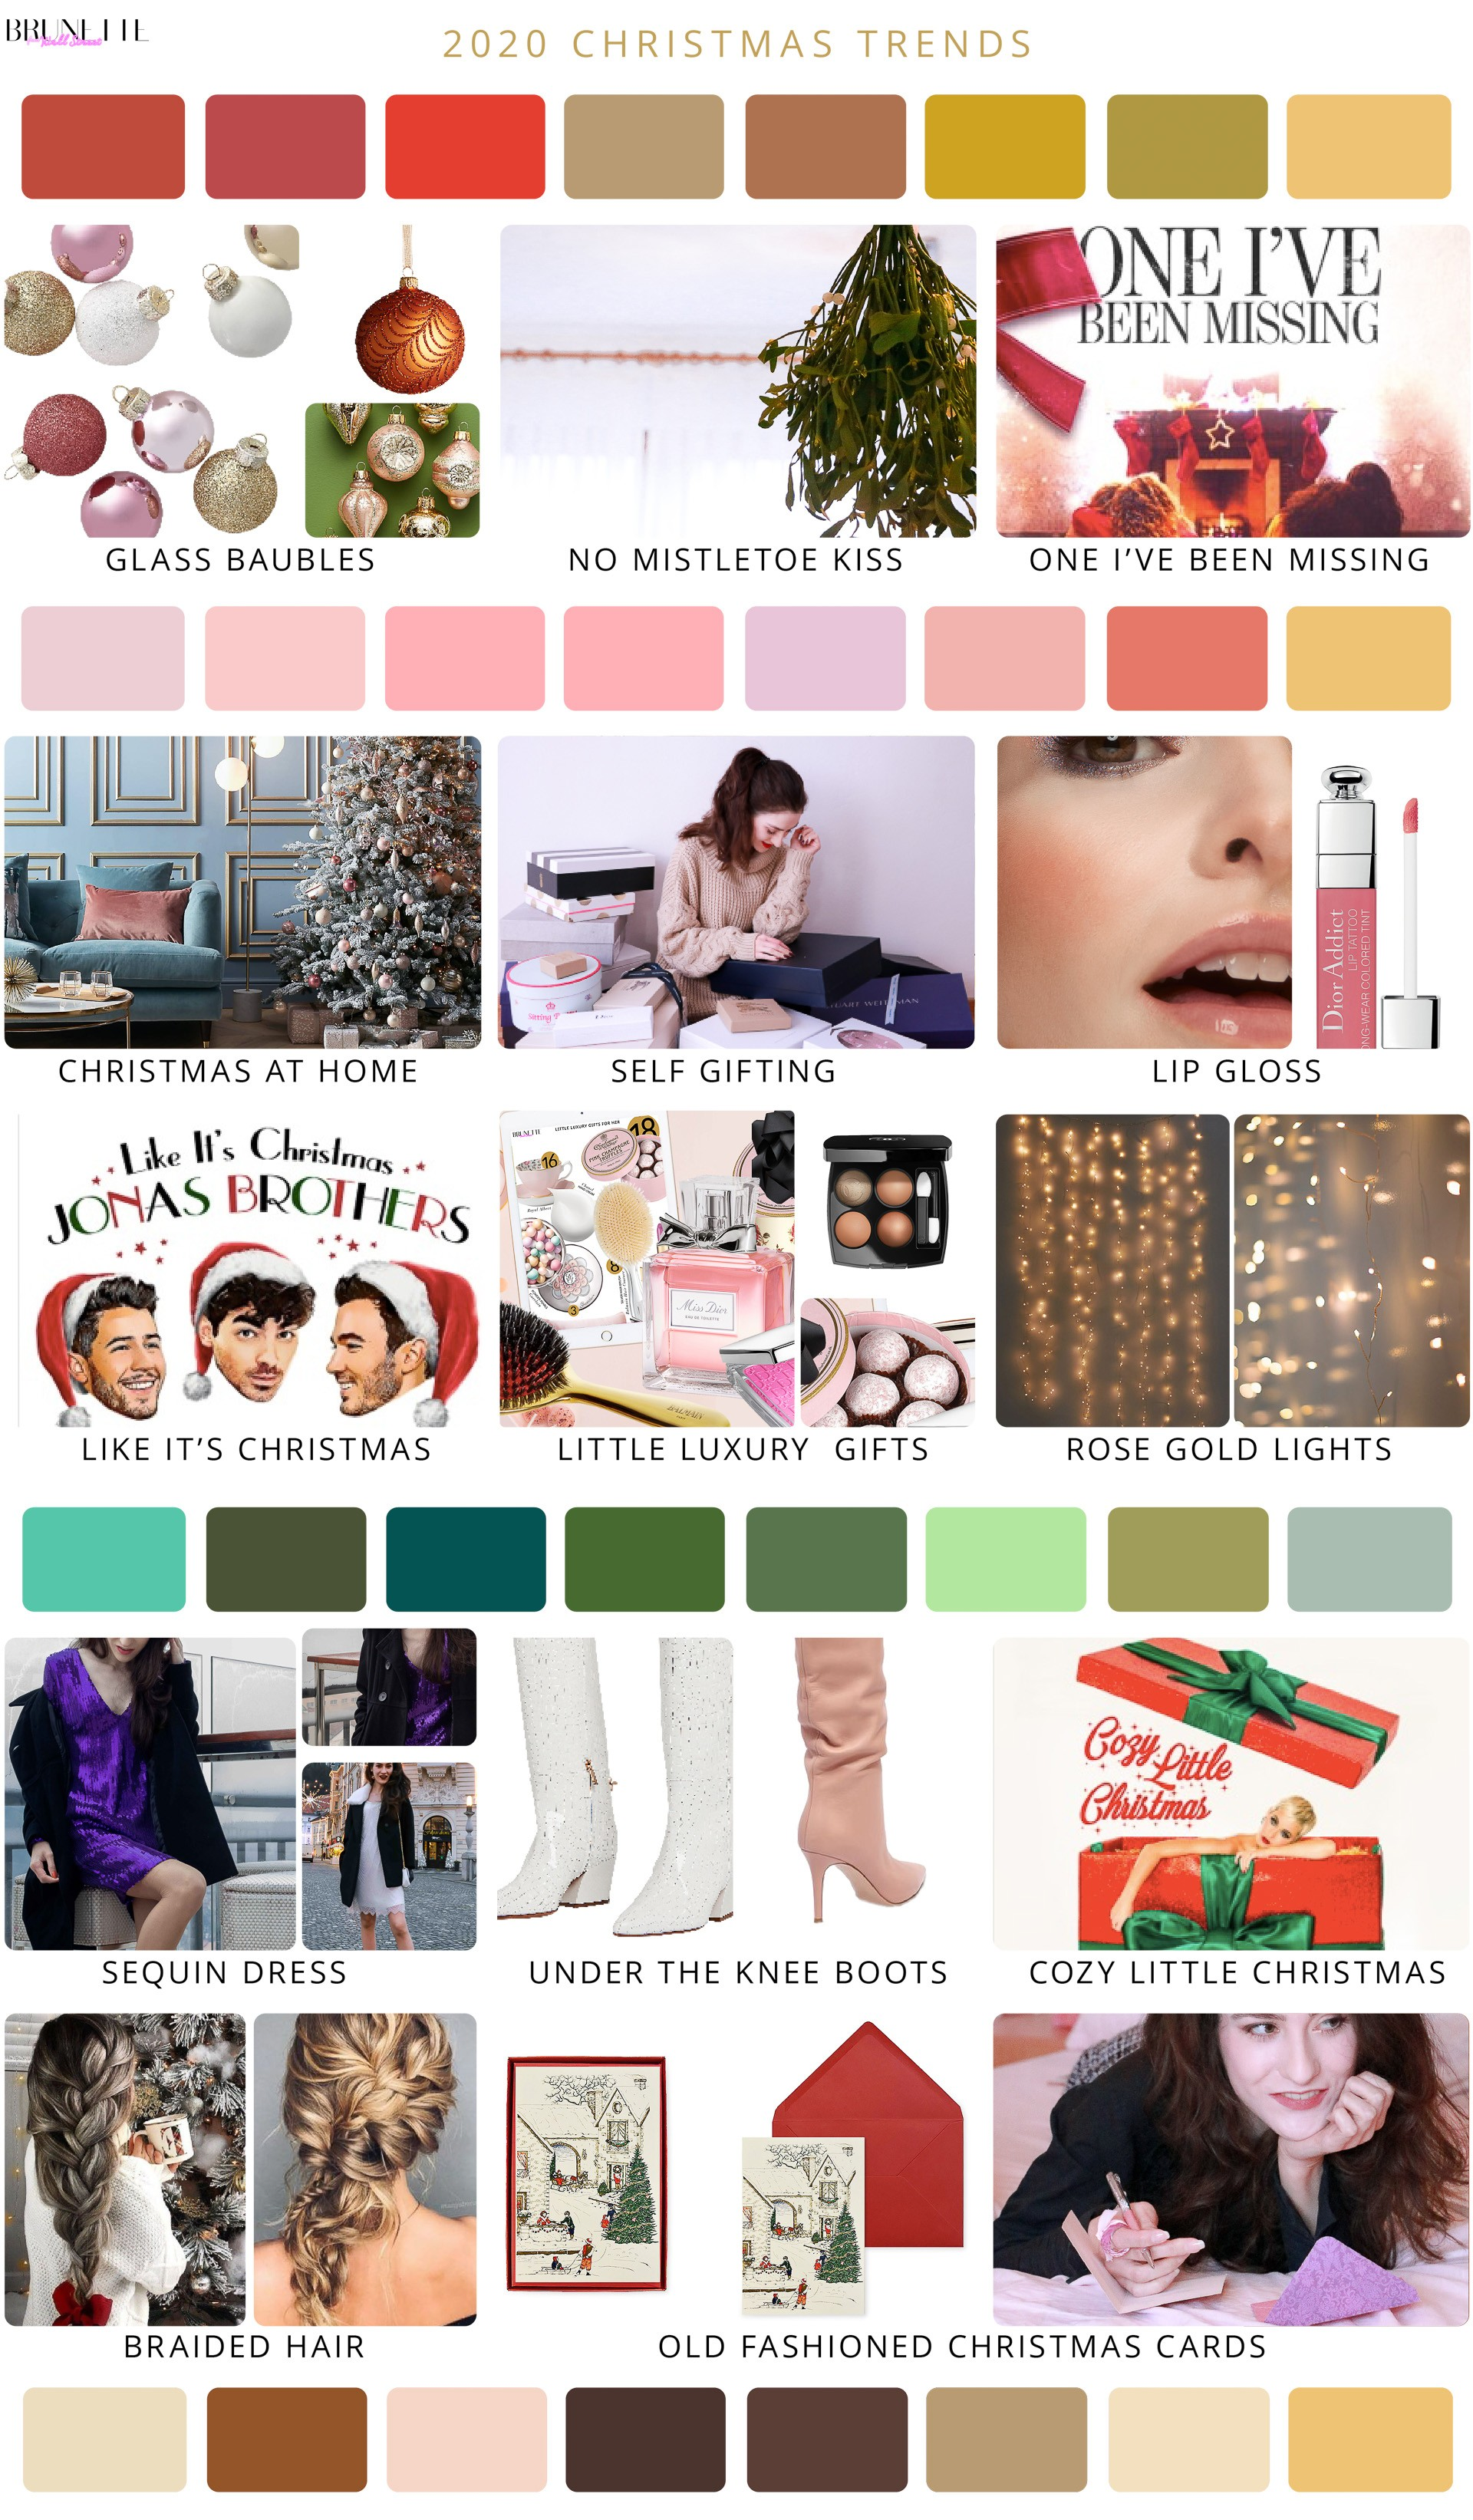 Whats Trending For Christmas 2020 What are Christmas trends for 2020? | Brunette from Wall Street